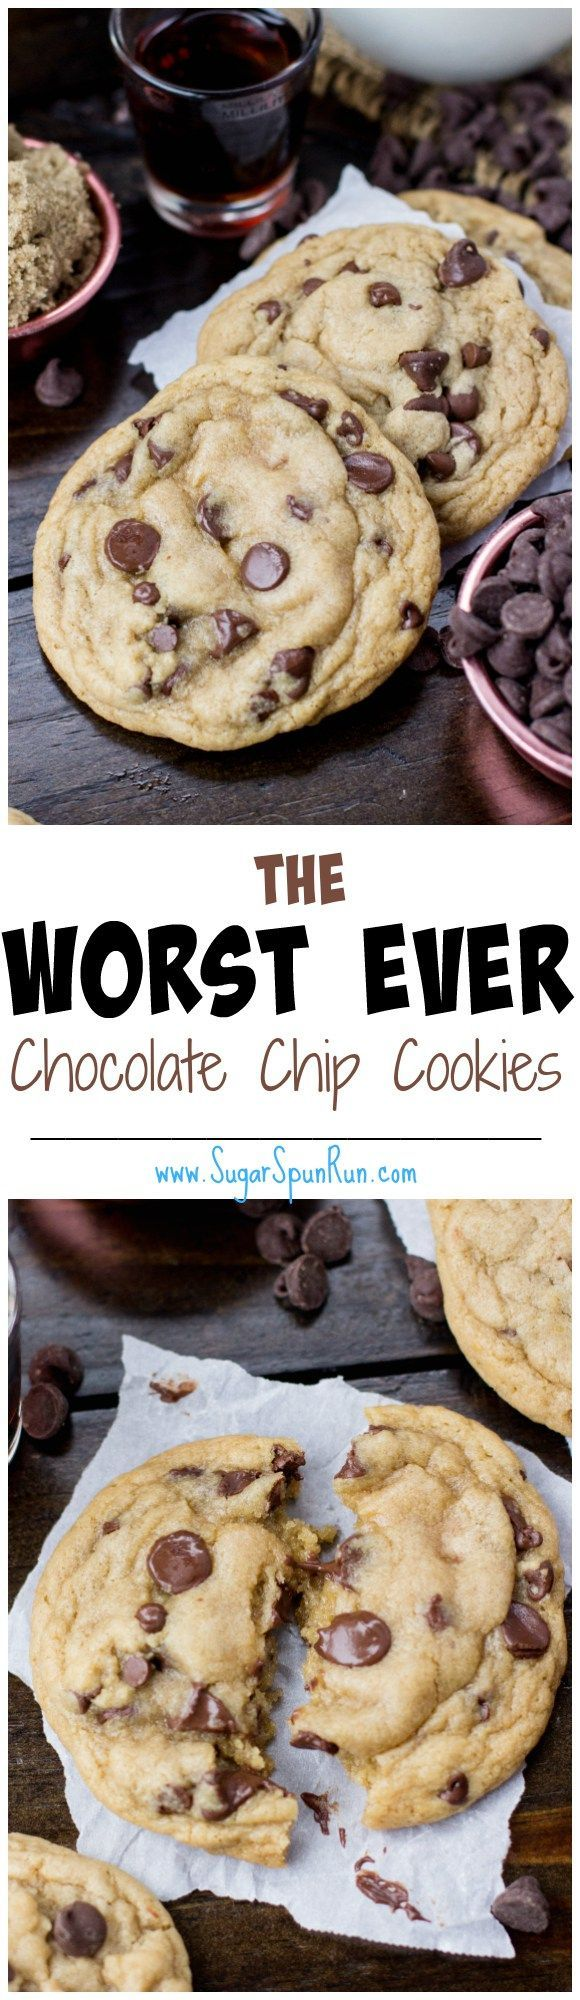 These are the BEST Chocolate Chip Cookies EVER! Rave reviews!